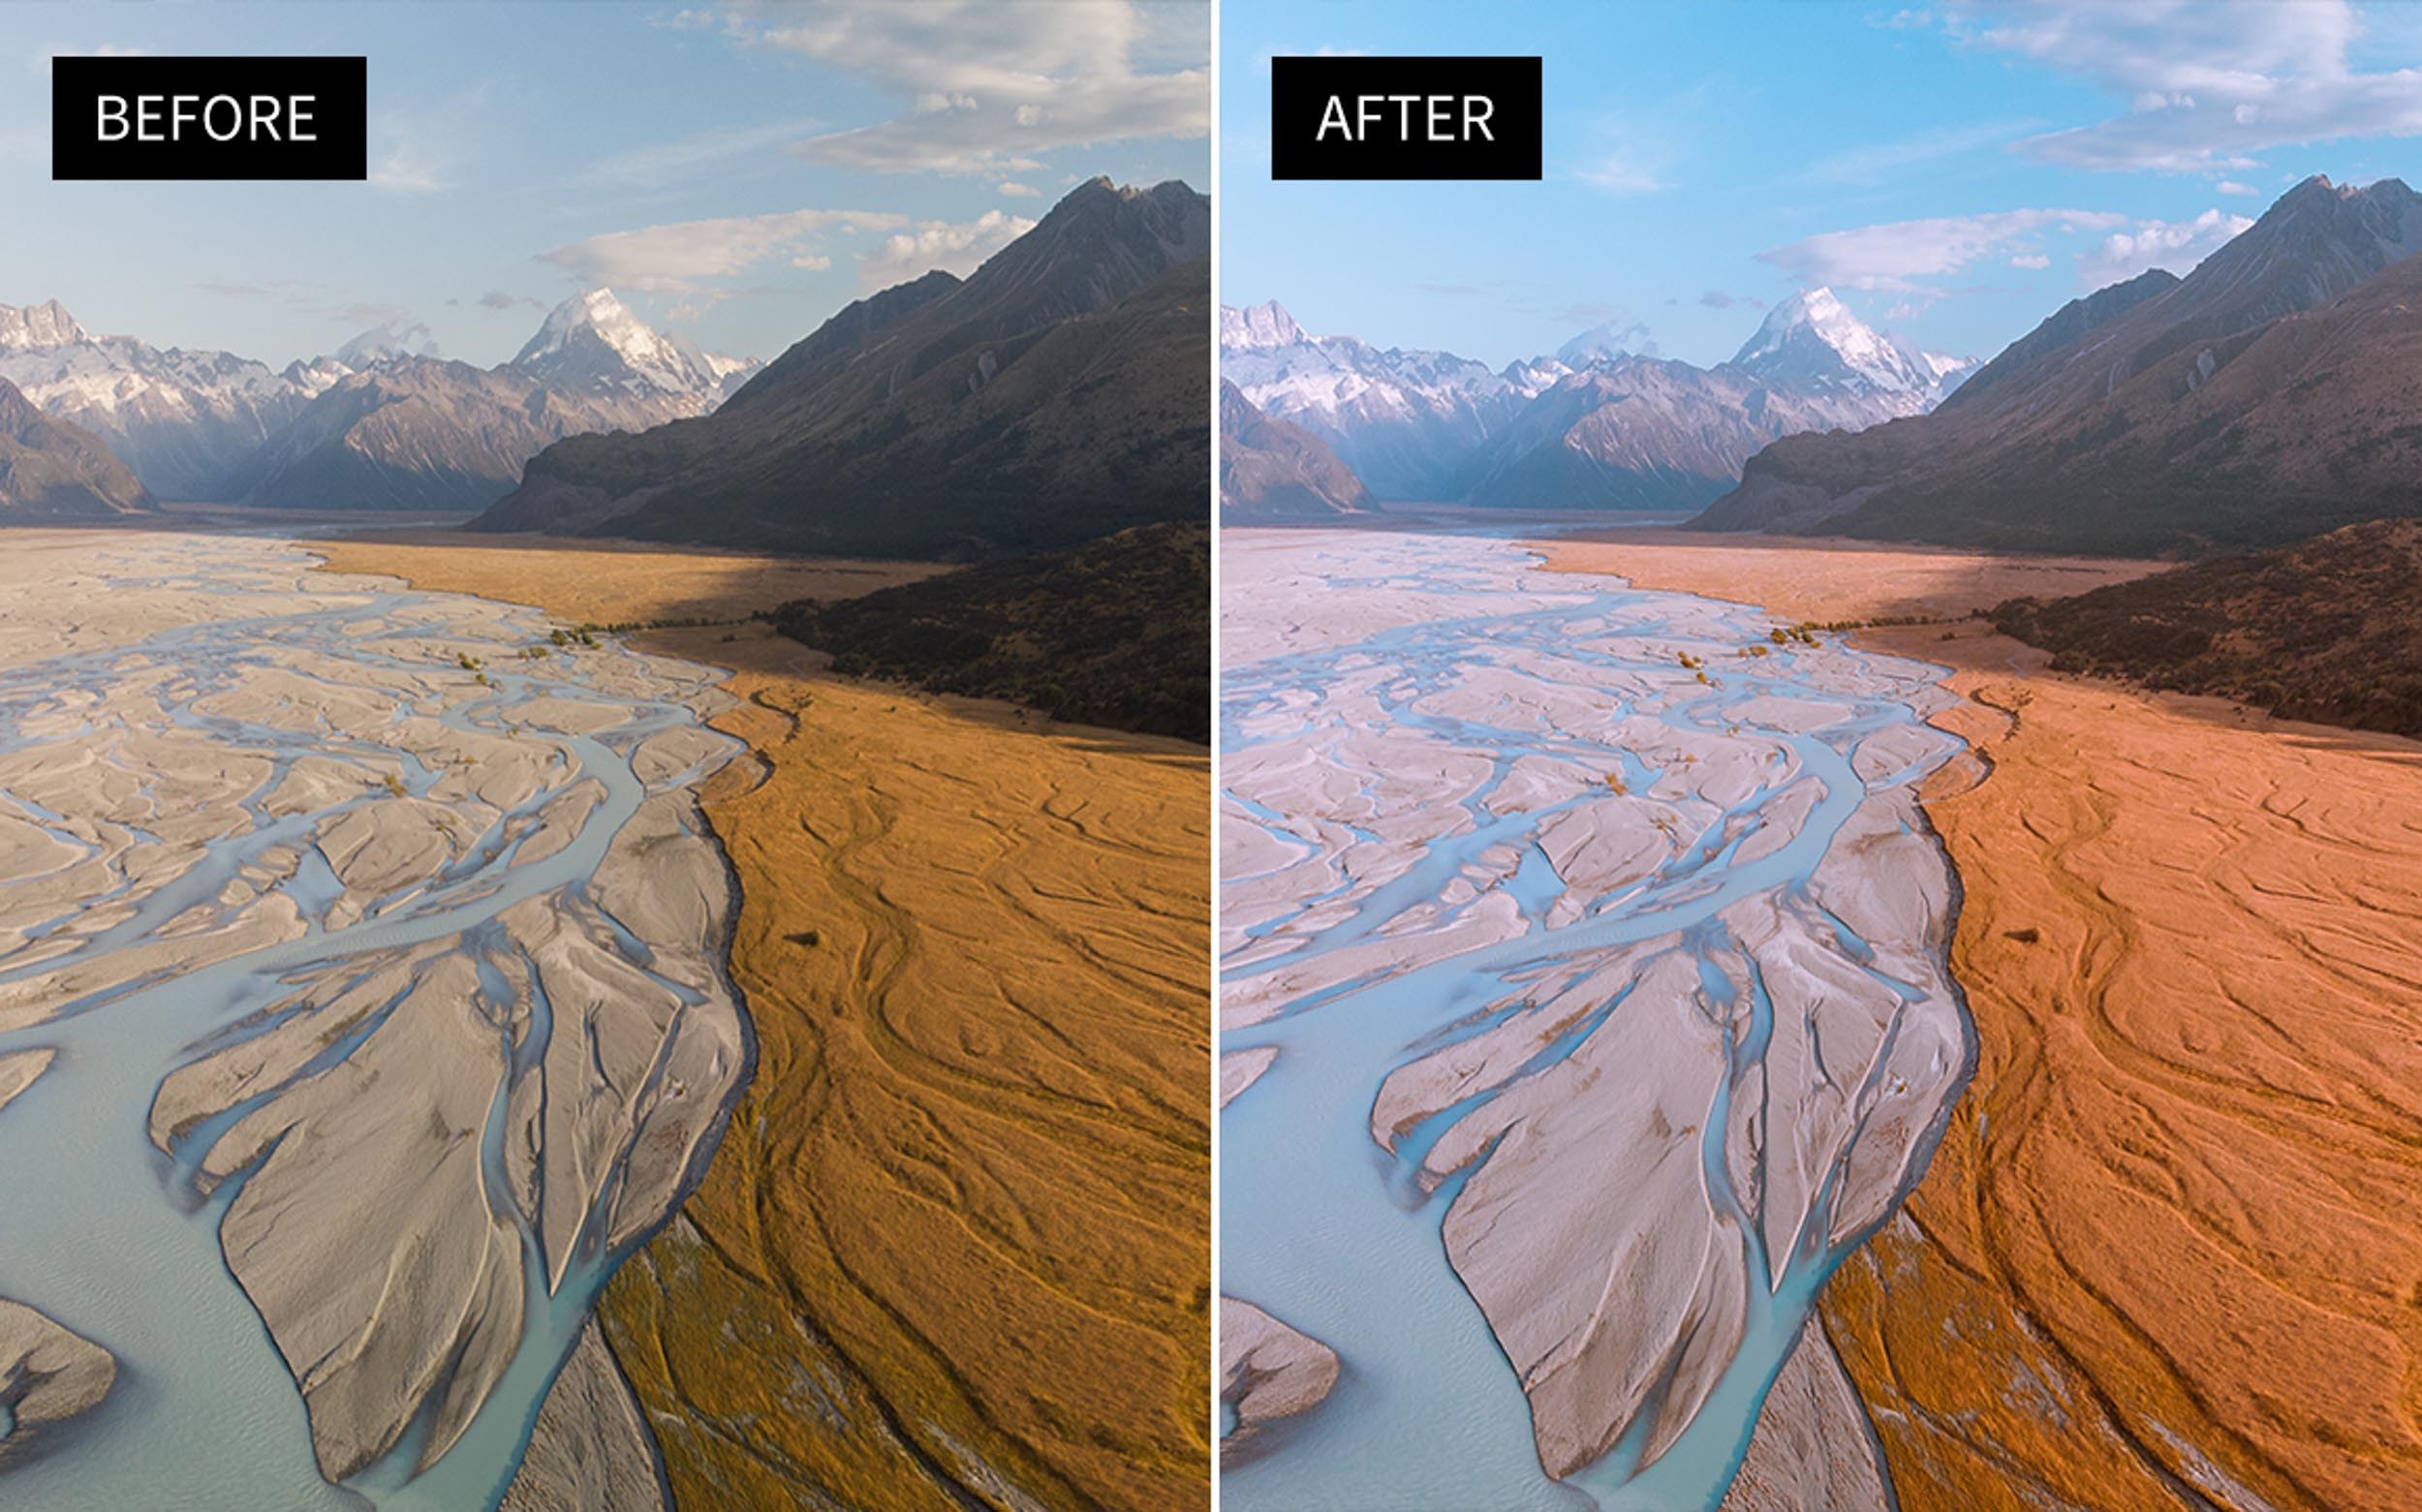 wildbonde-river-mountains-before-after-presets.jpg